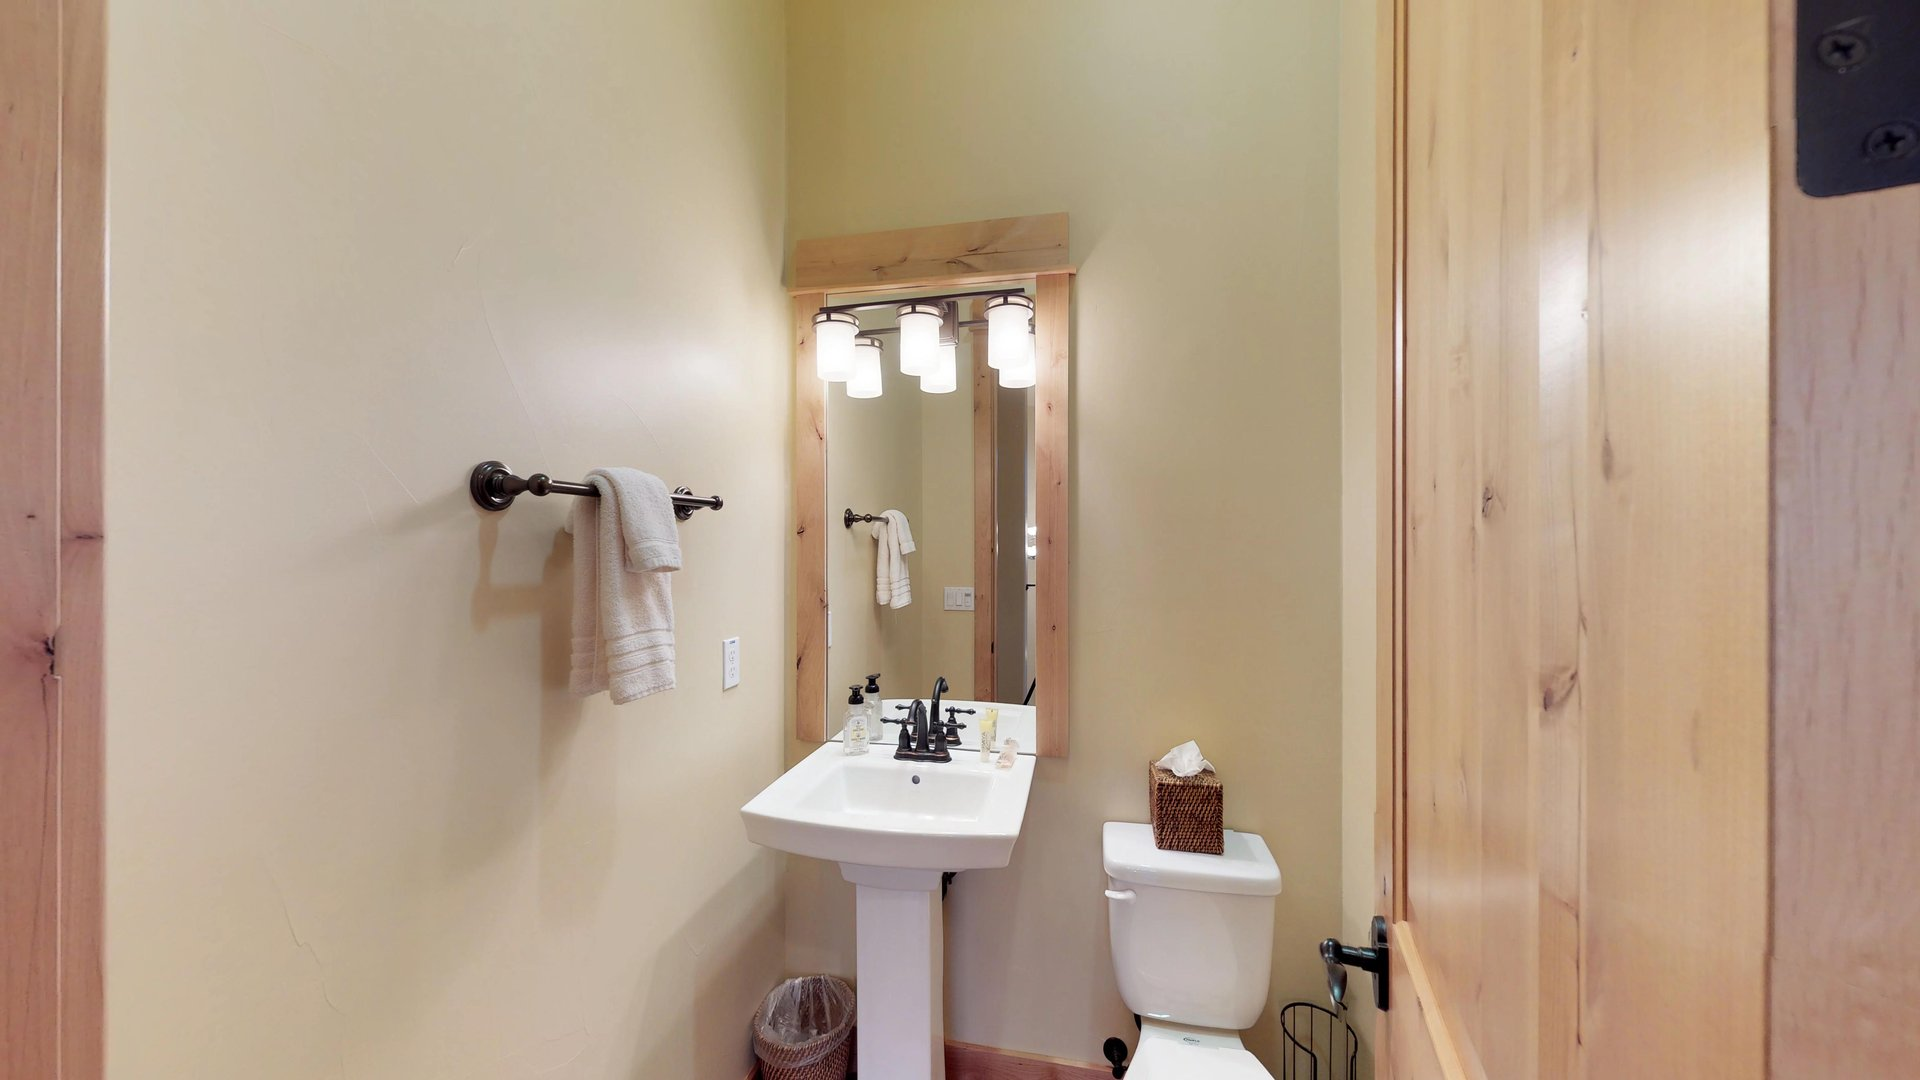 An Image of the Bathroom Sink, Mirror, and Toilet.